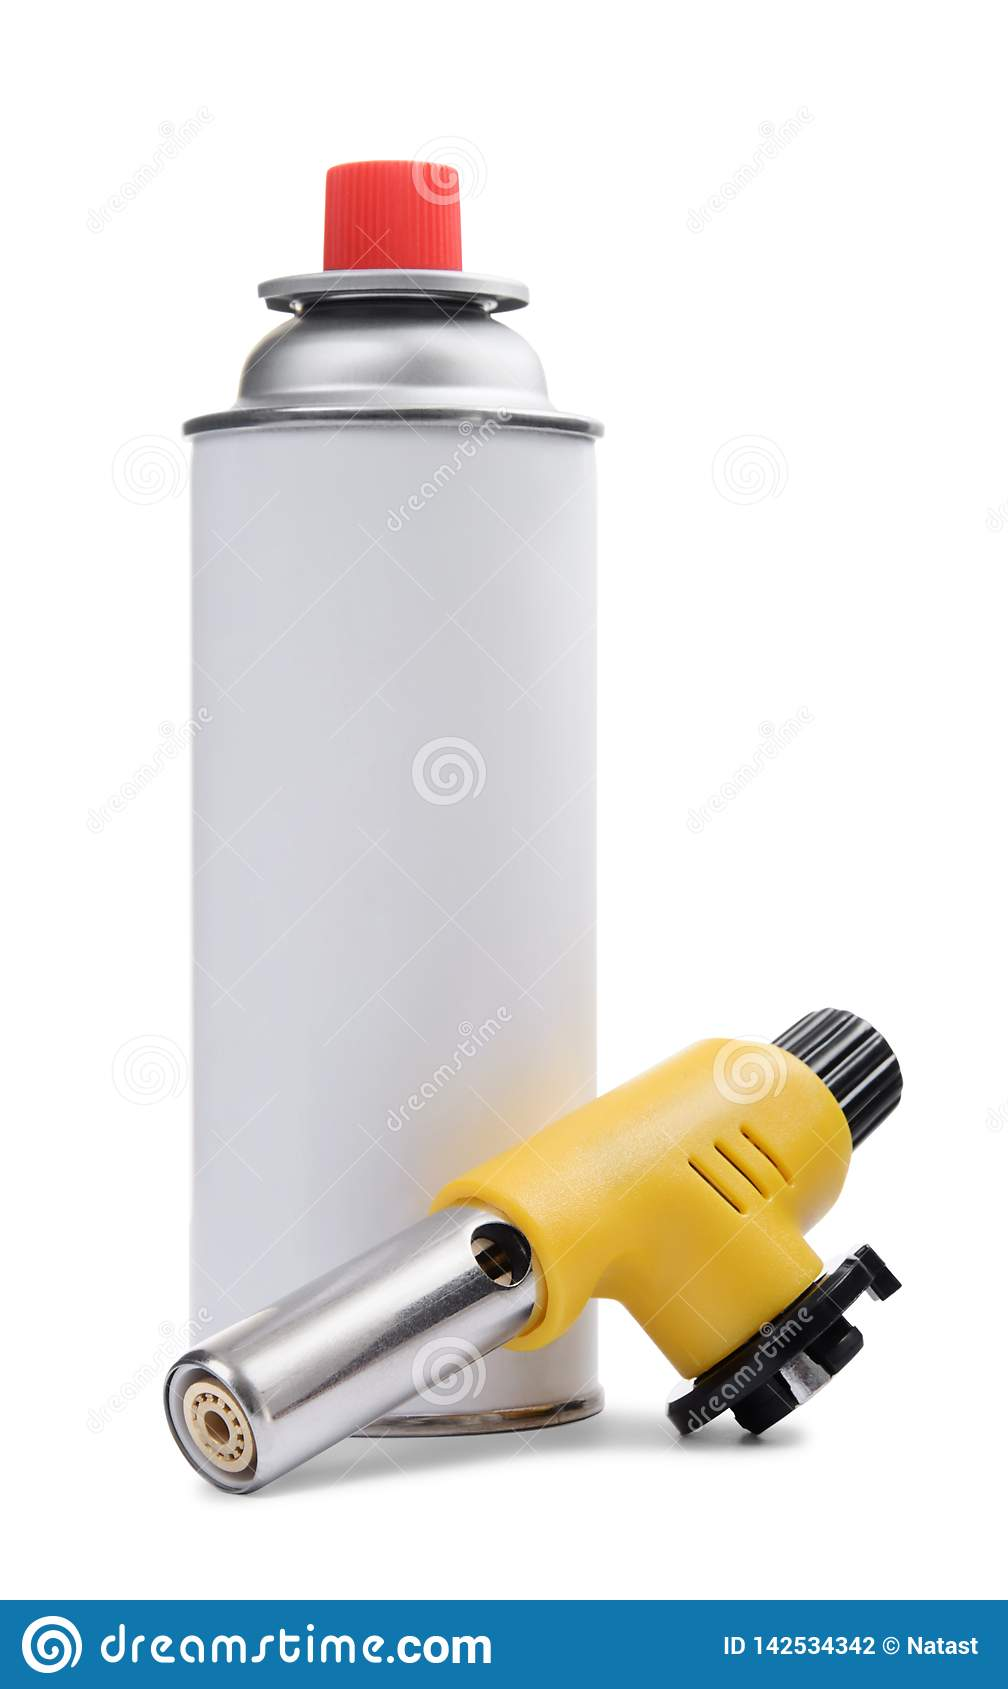 Manual gas torch burner and gas spray can on white